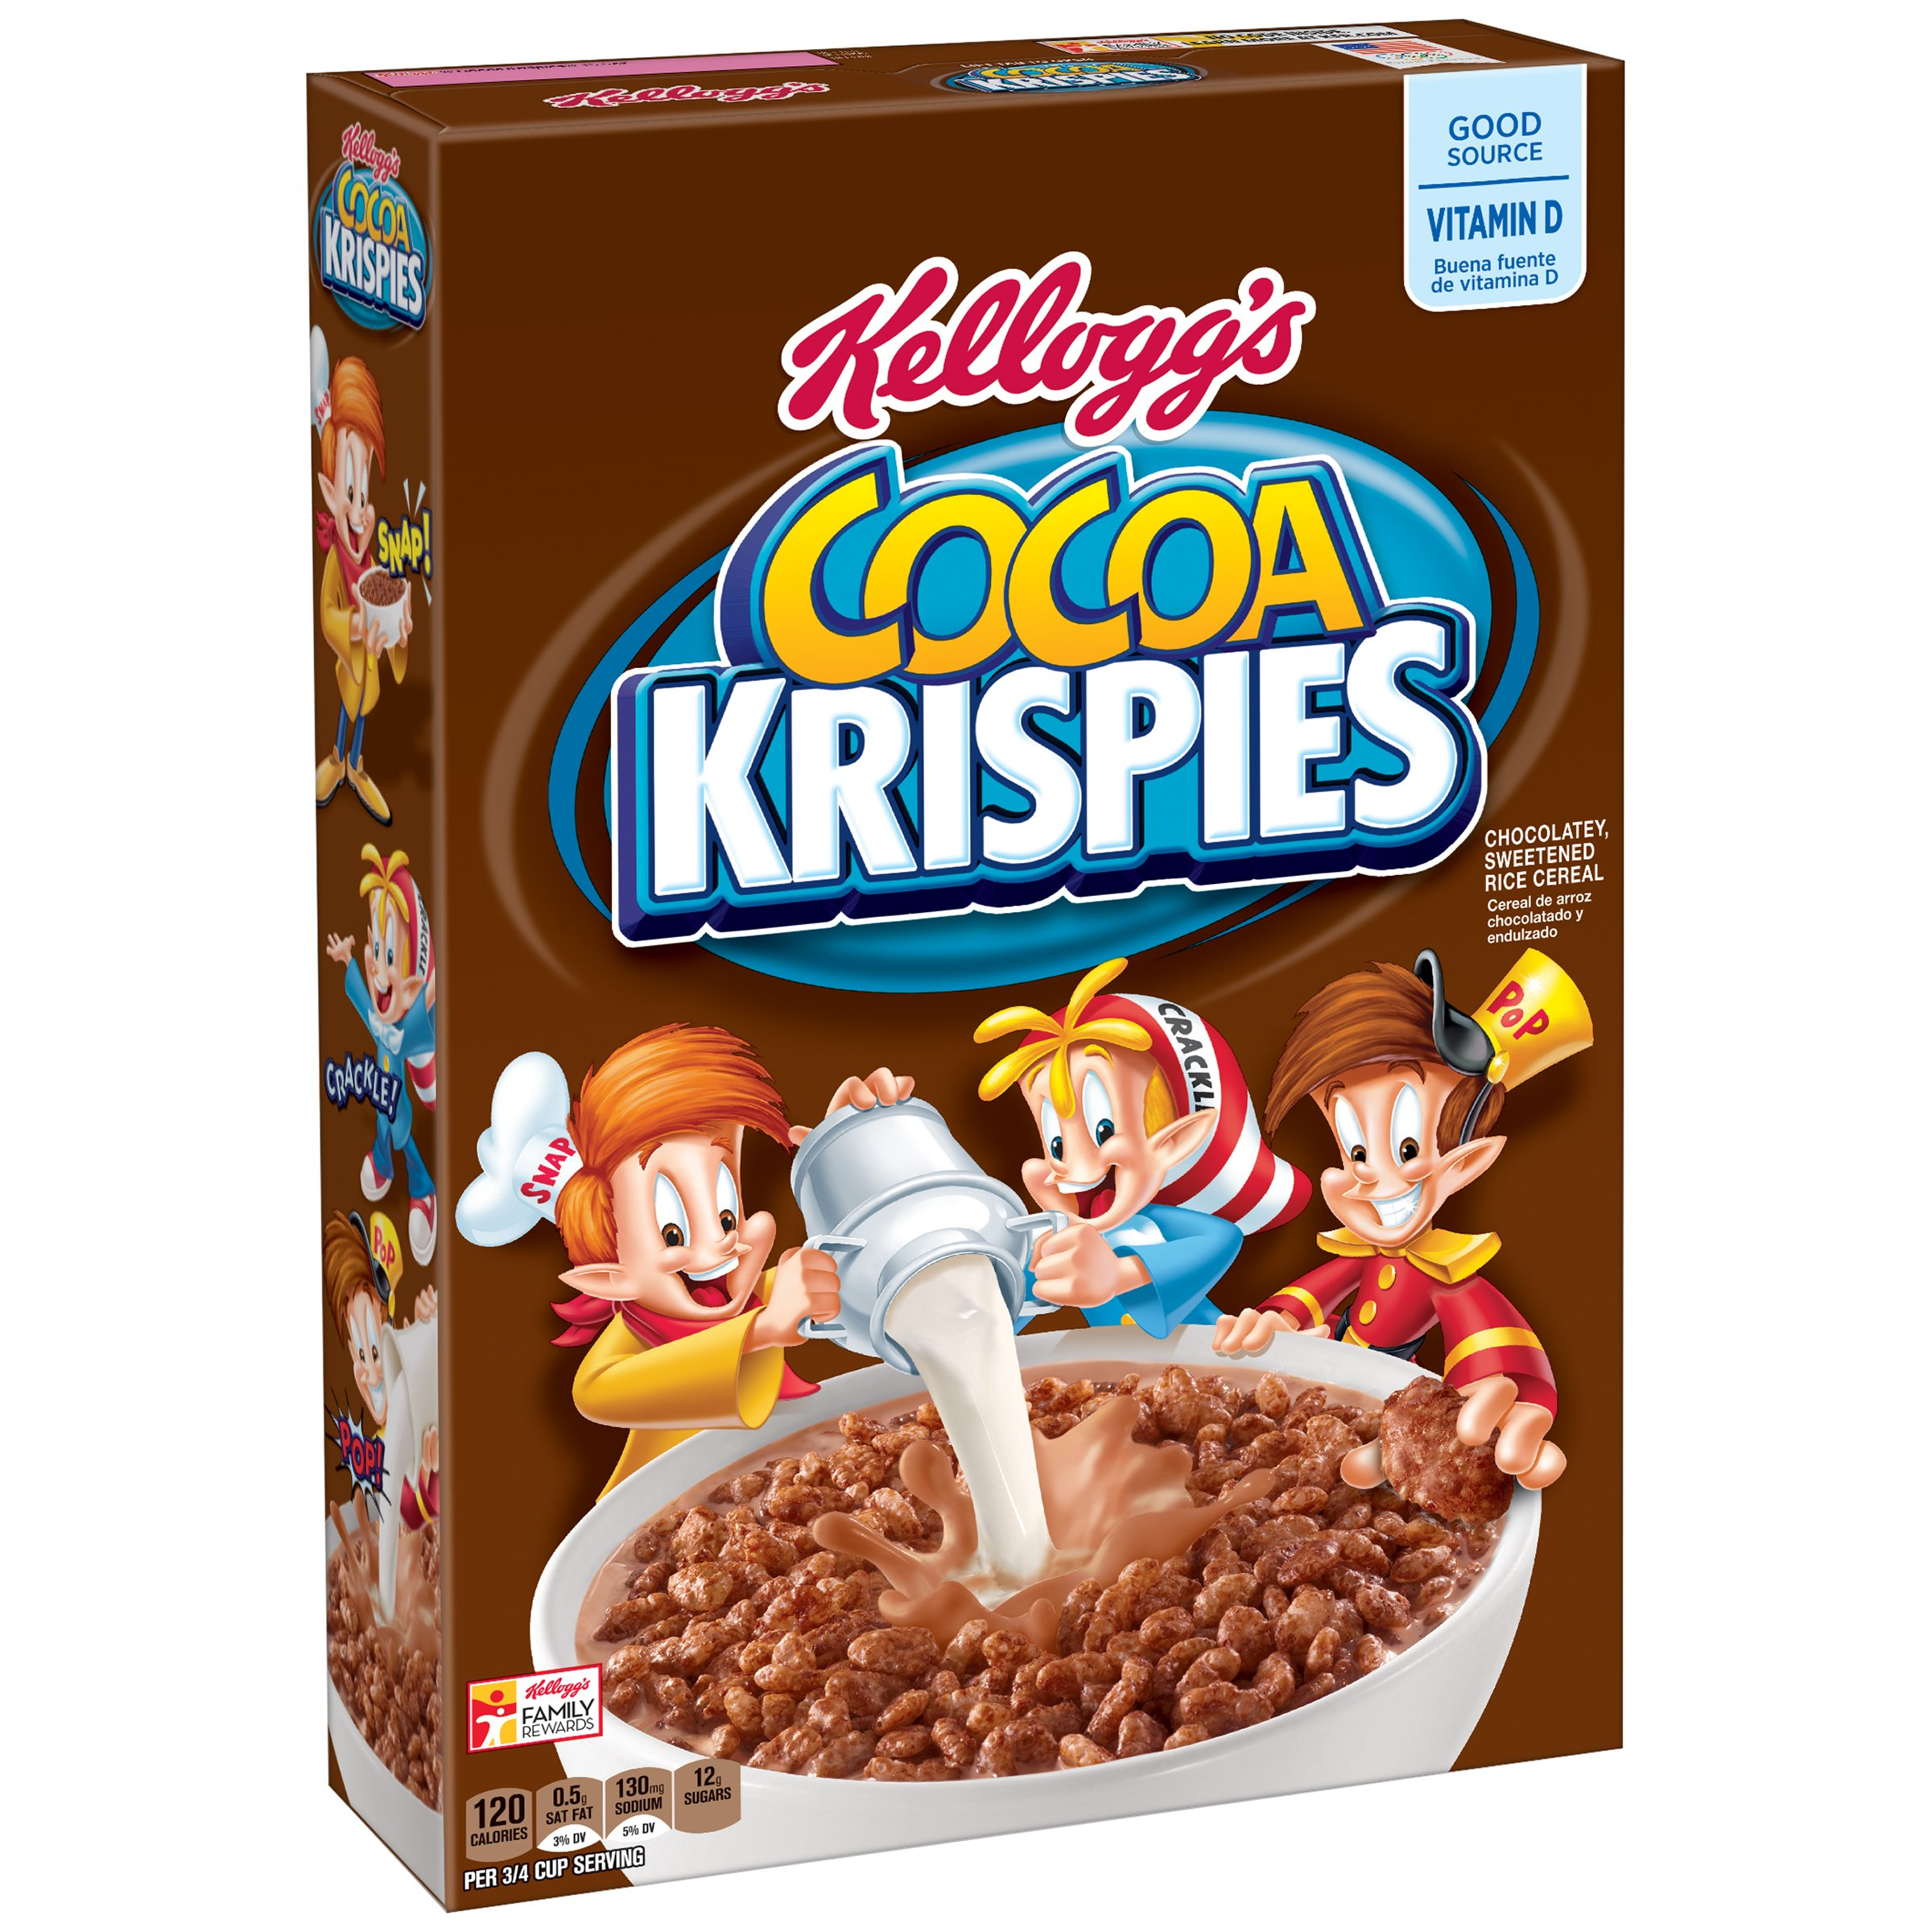 Kellogg's Cocoa Krispies Breakfast Cereal, 15.5 Ounce Box (Pack of 4)